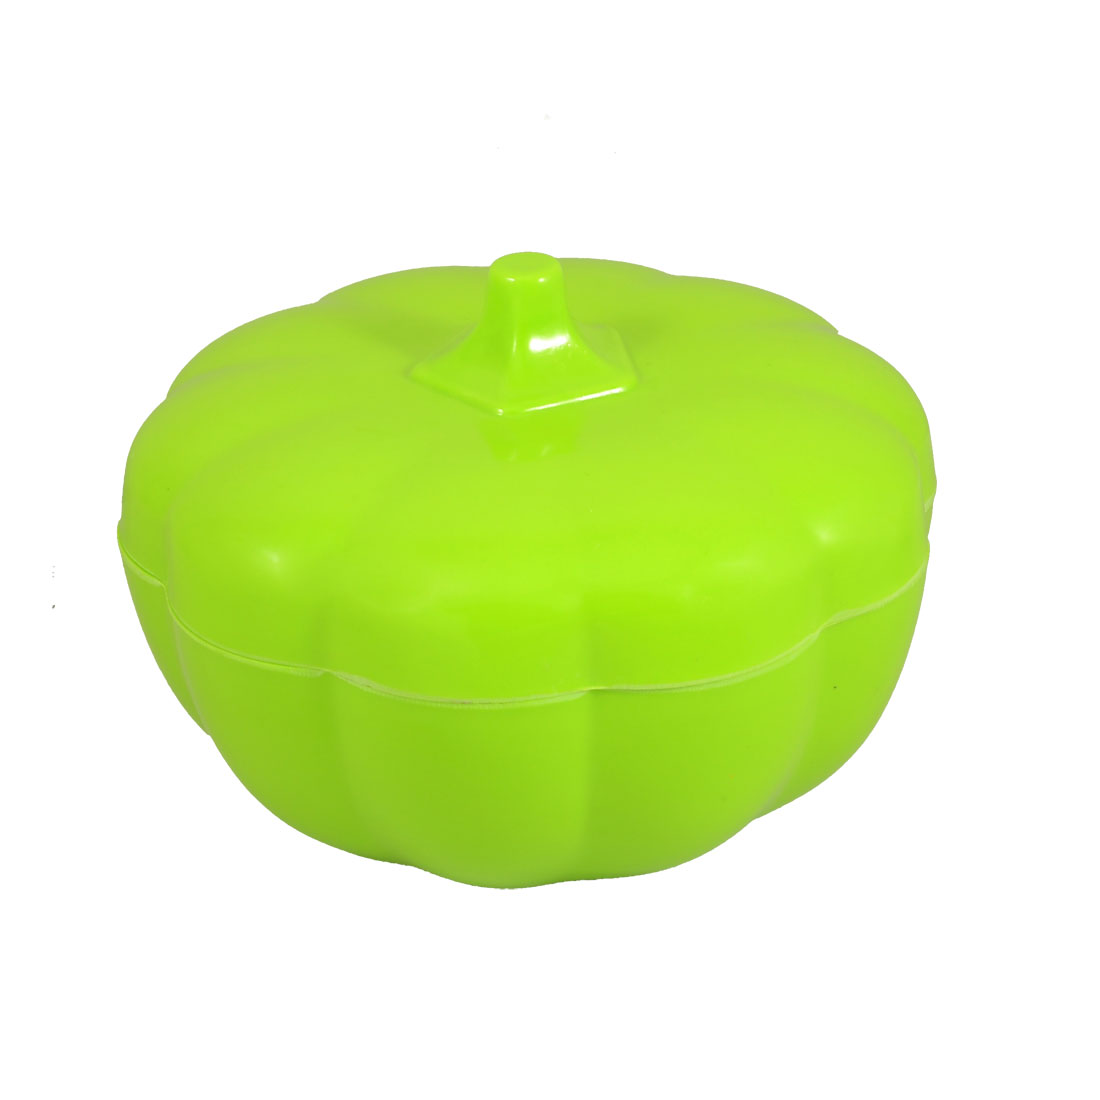 "Home Plastic 5.9"" Dia Pumpkin Shape Covered Candy Dish Bowl Green"